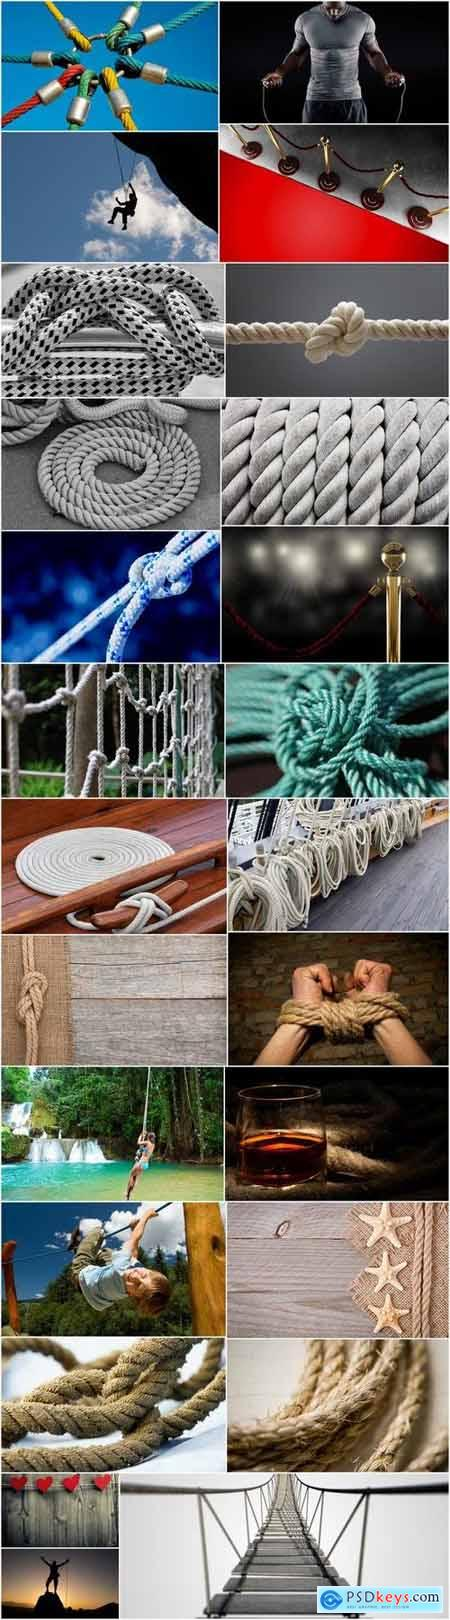 Cord a rope thread 25 HQ Jpeg